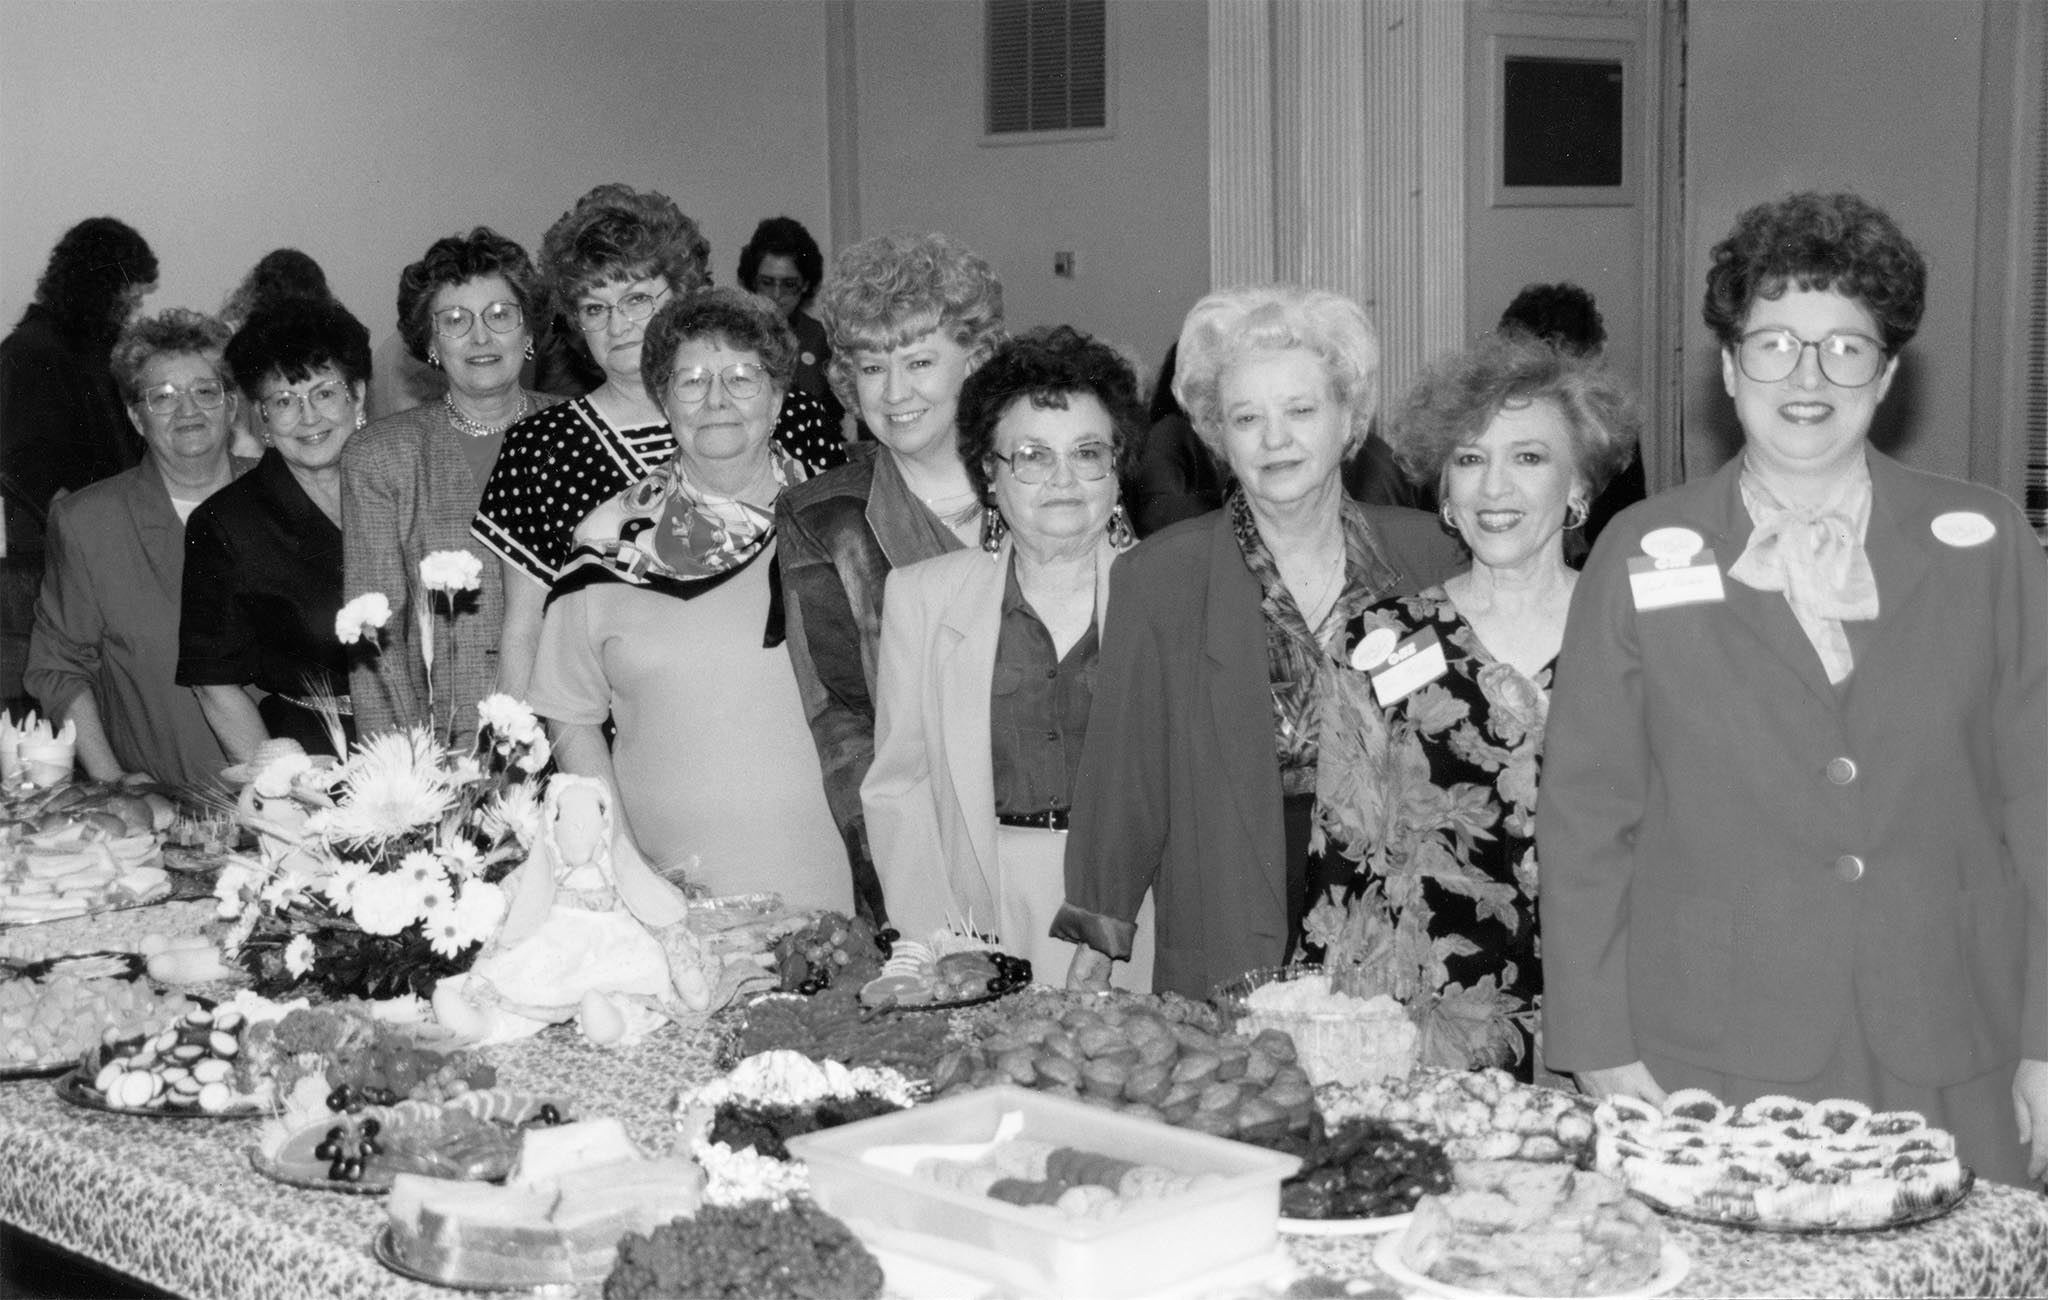 One of the most popular events hosted by the Oklahoma Farm Bureau Women's Committee is the Farm City Festival. Women from across the state bring home-prepared food, featuring ingredients produced in Oklahoma, to the Oklahoma State Capitol during the legislative session to educate lawmakers and their staff about the Oklahoma agriculture industry. Here, members pause briefly behind their decorated table containing homemade foods before long lines form for the Farm City Festival in 1994. During the event, more than 500 individuals registered in the guest book. Committee members include (left to right): June Kliewer, Doris Lee Howard, Juanita Bolay, Yvonne Phelps, Beverly Delmedico, Sue Jarvis, Chairman Nellie Fern Nelson, Helen Keller and Sarah Henson.